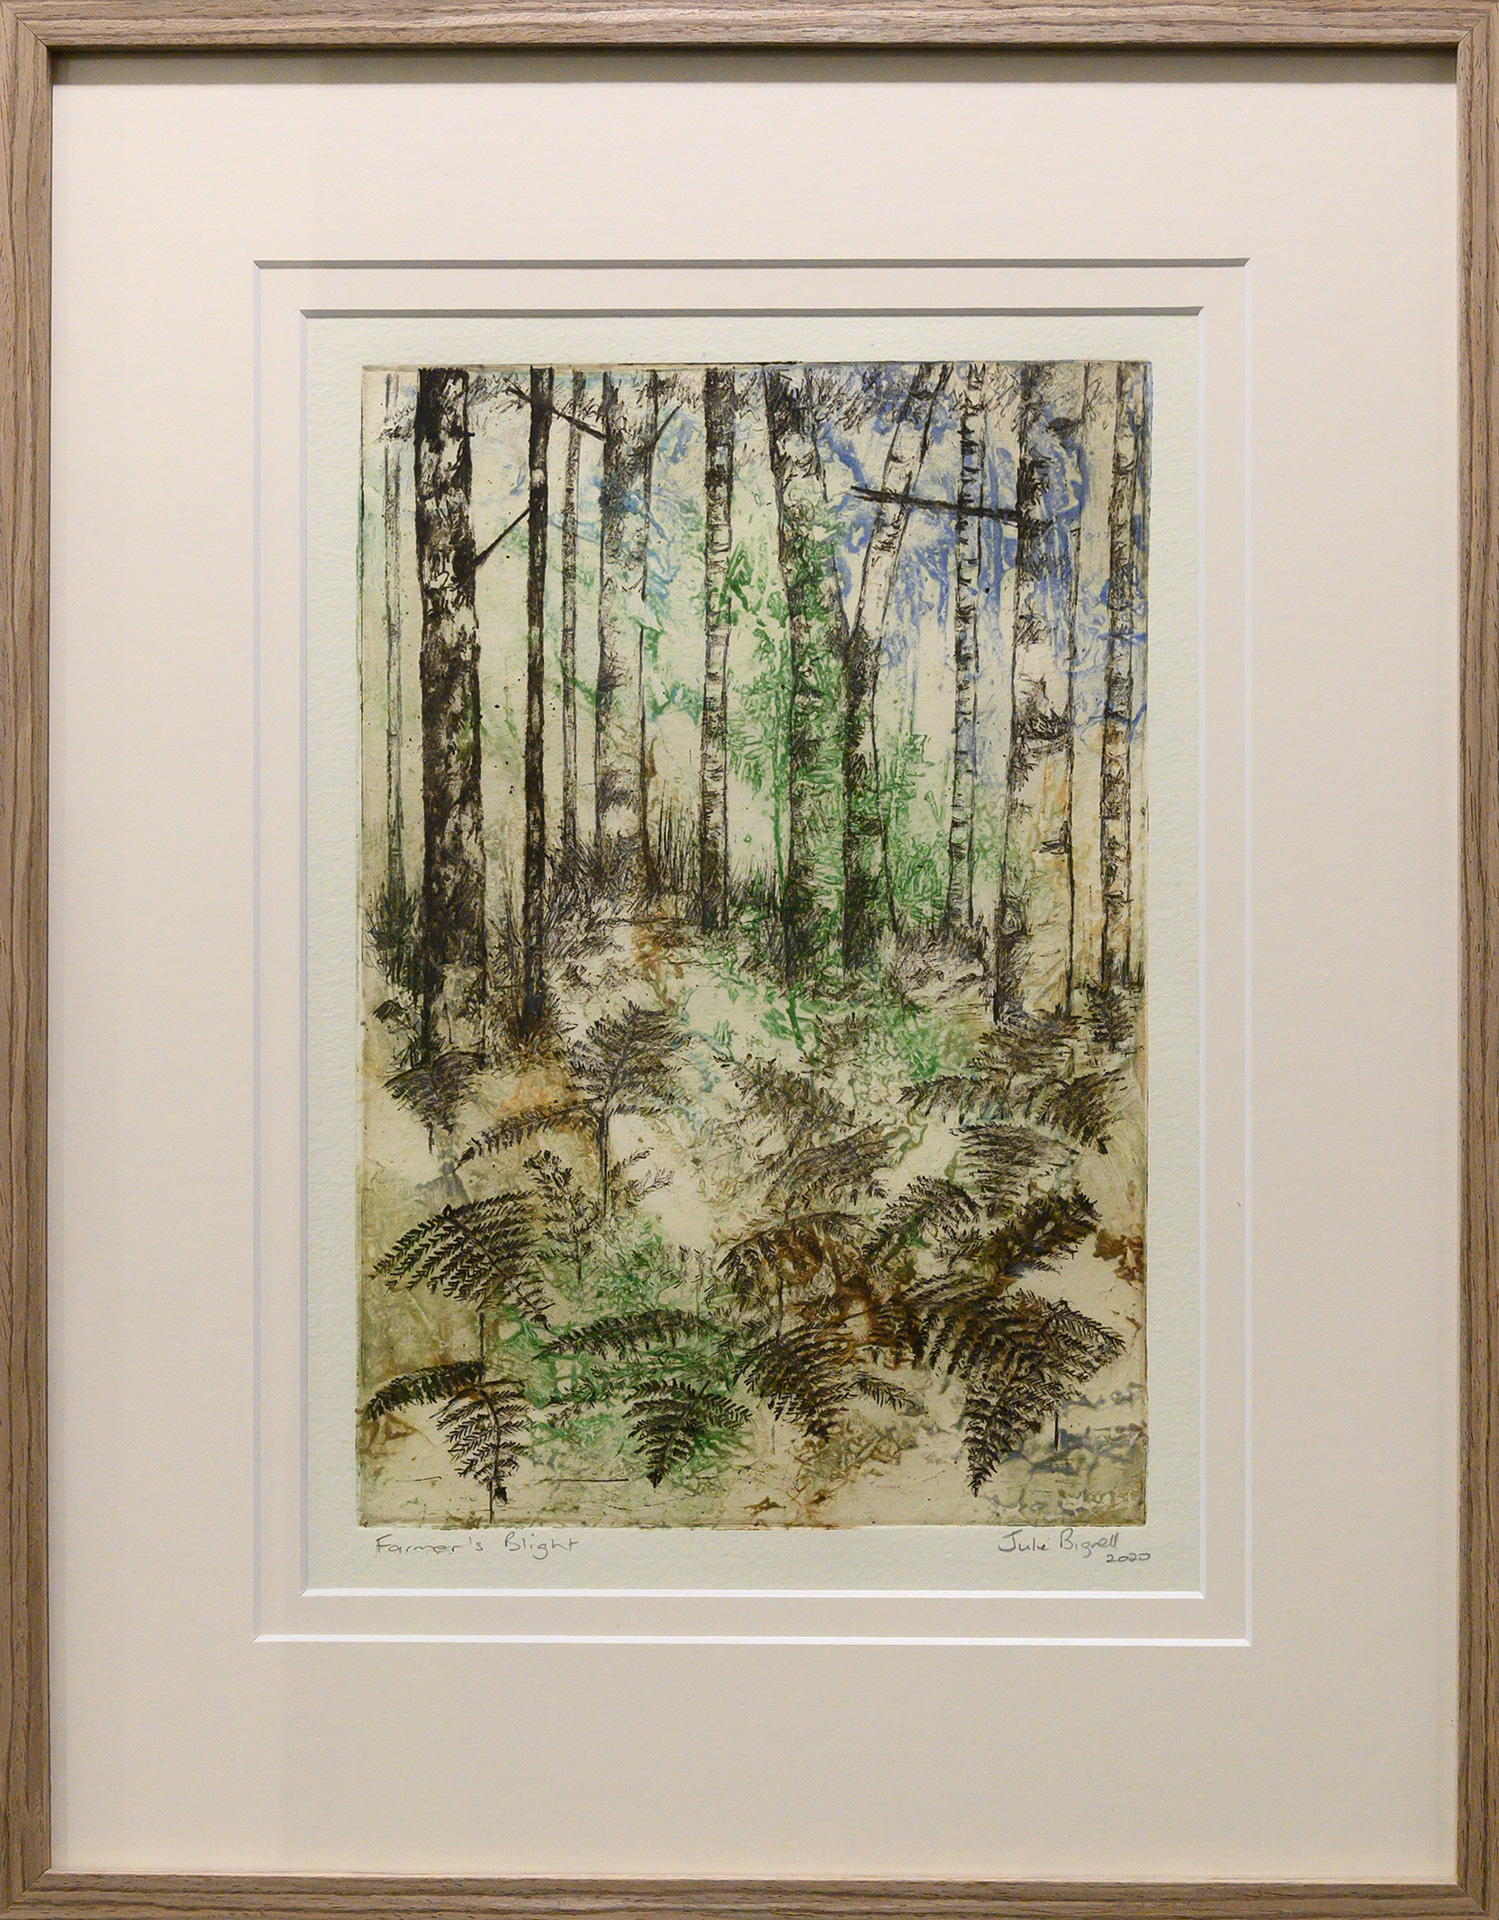 Framed artwork by Julie Bignell of bracken fern in the foreground with tall skinny tree trunks in the background